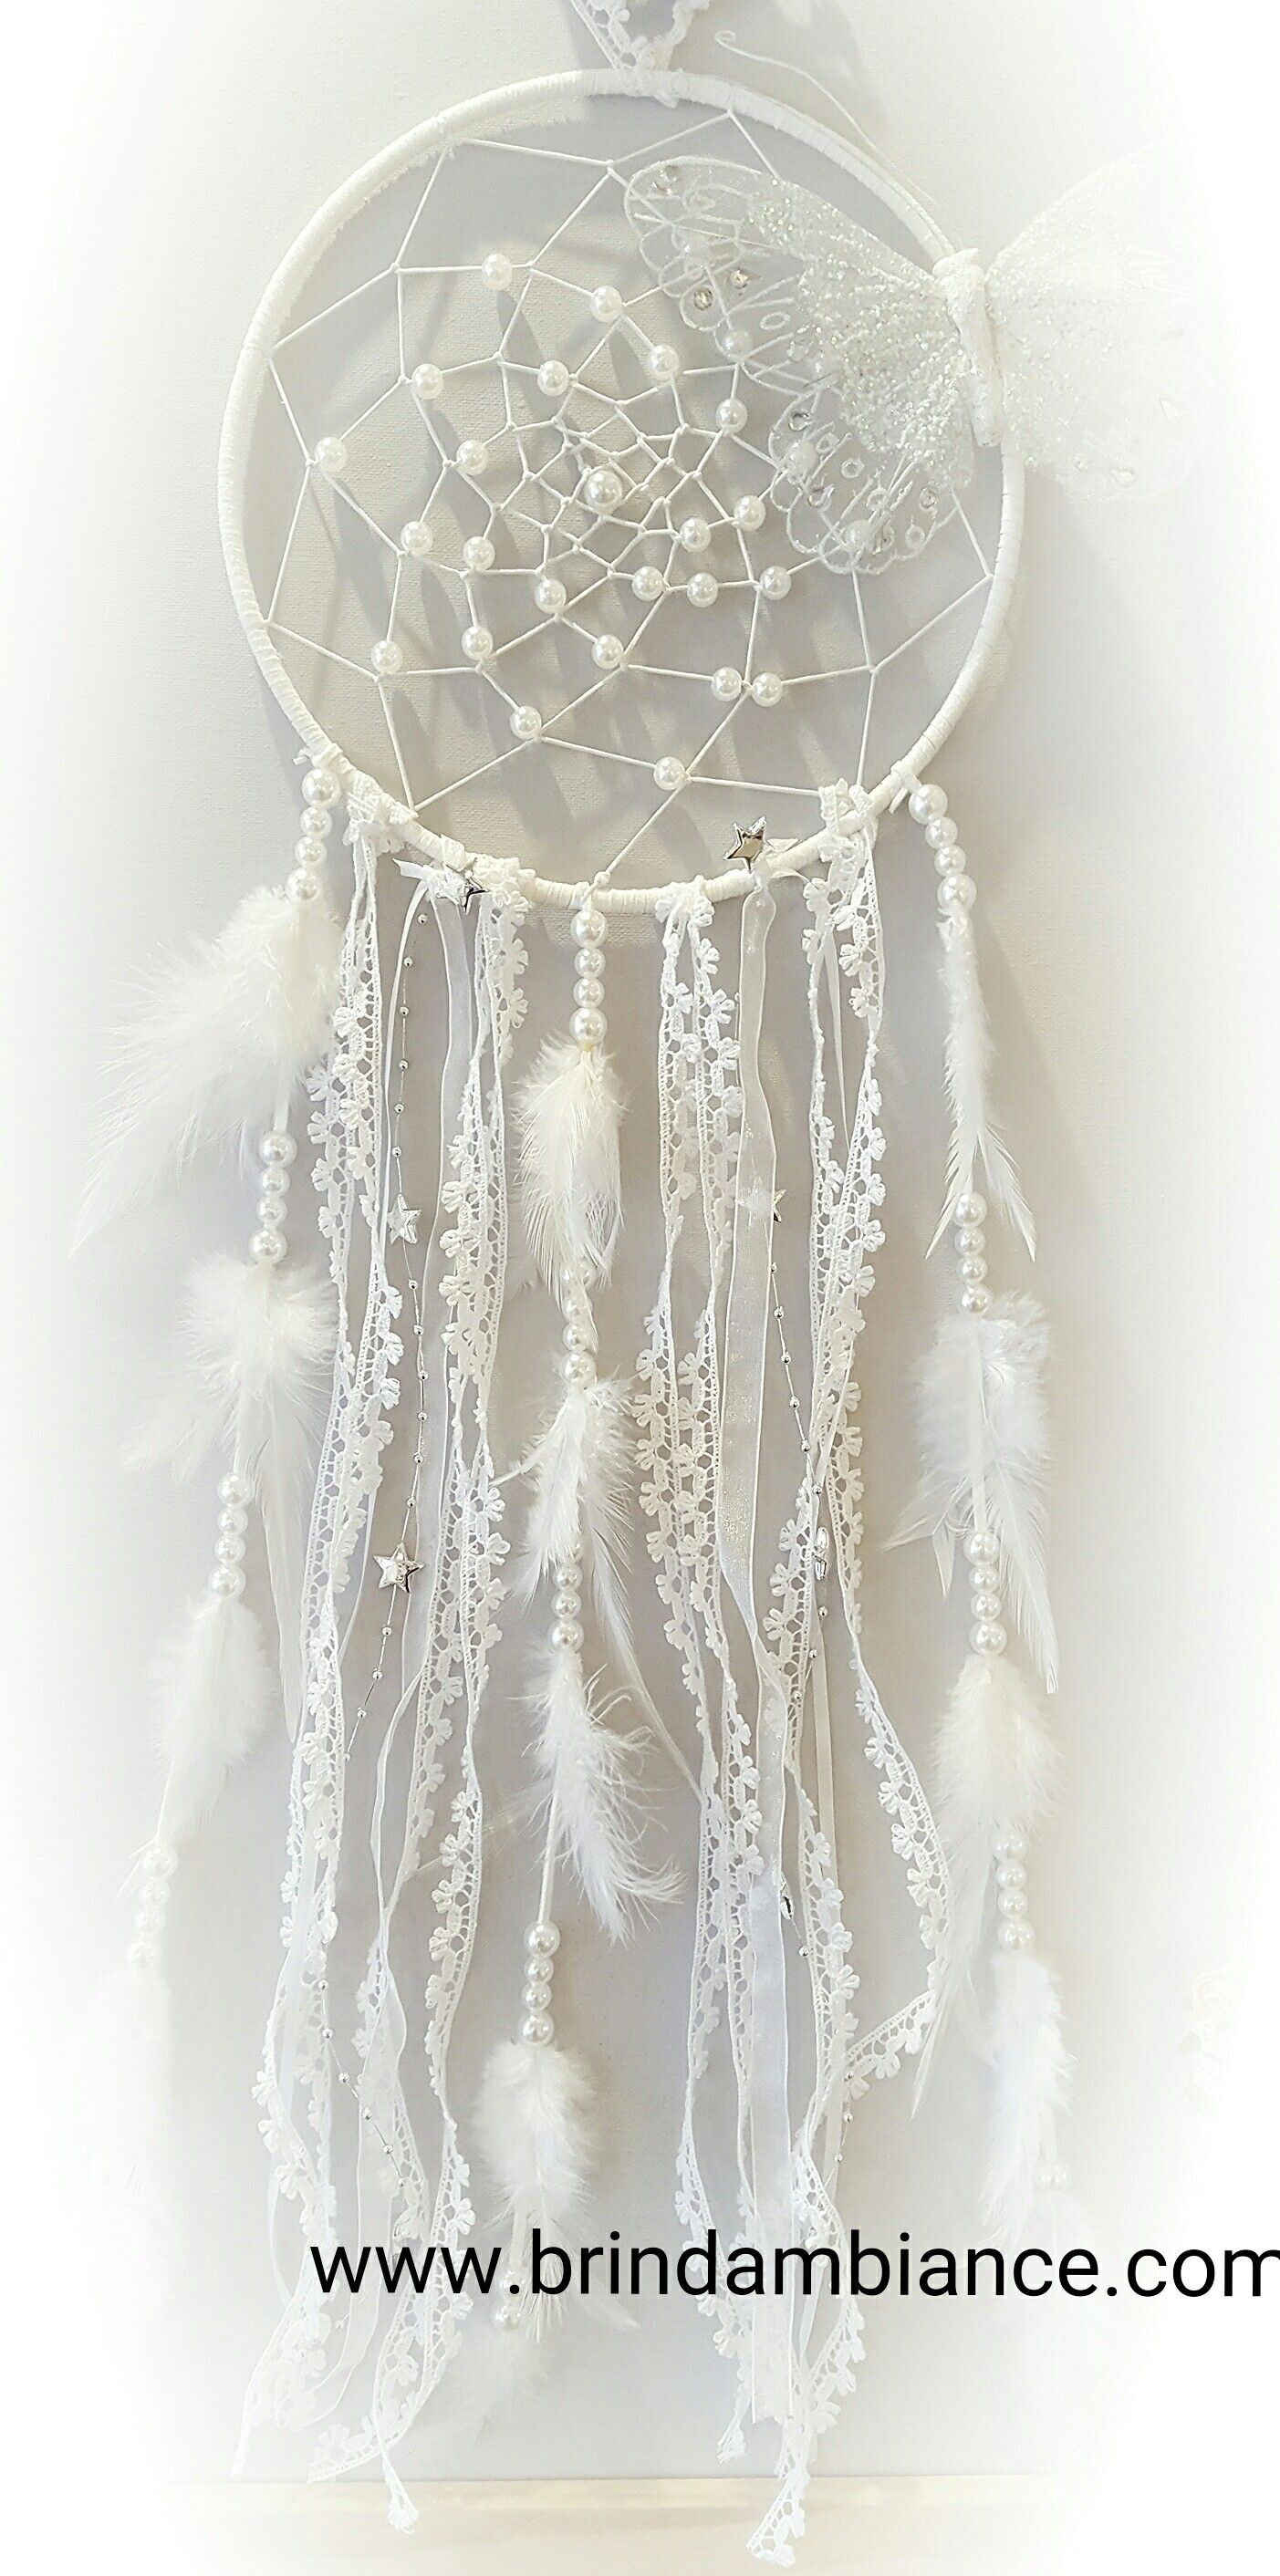 Who Created The Dream Catcher I love this New dreamcatcher I created for our dreams 32